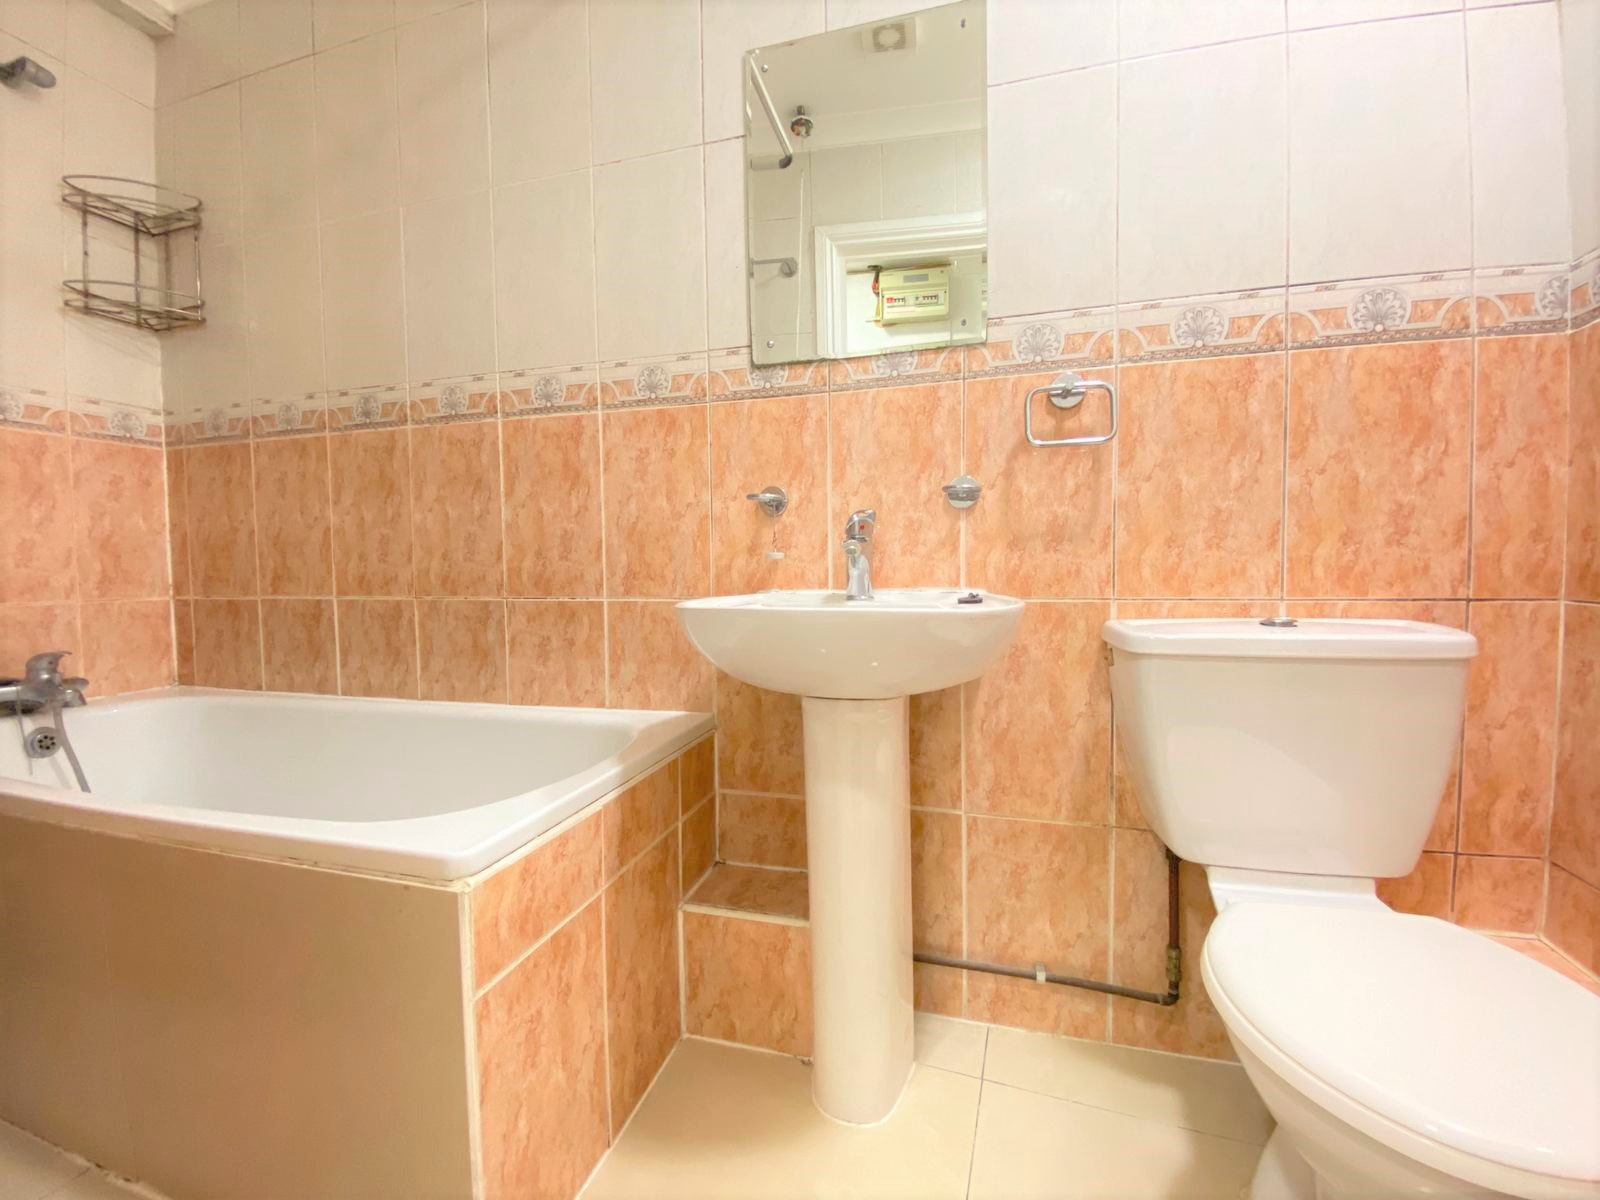 3 bed flat to rent in North End Road, West Kensington, London  - Property Image 6